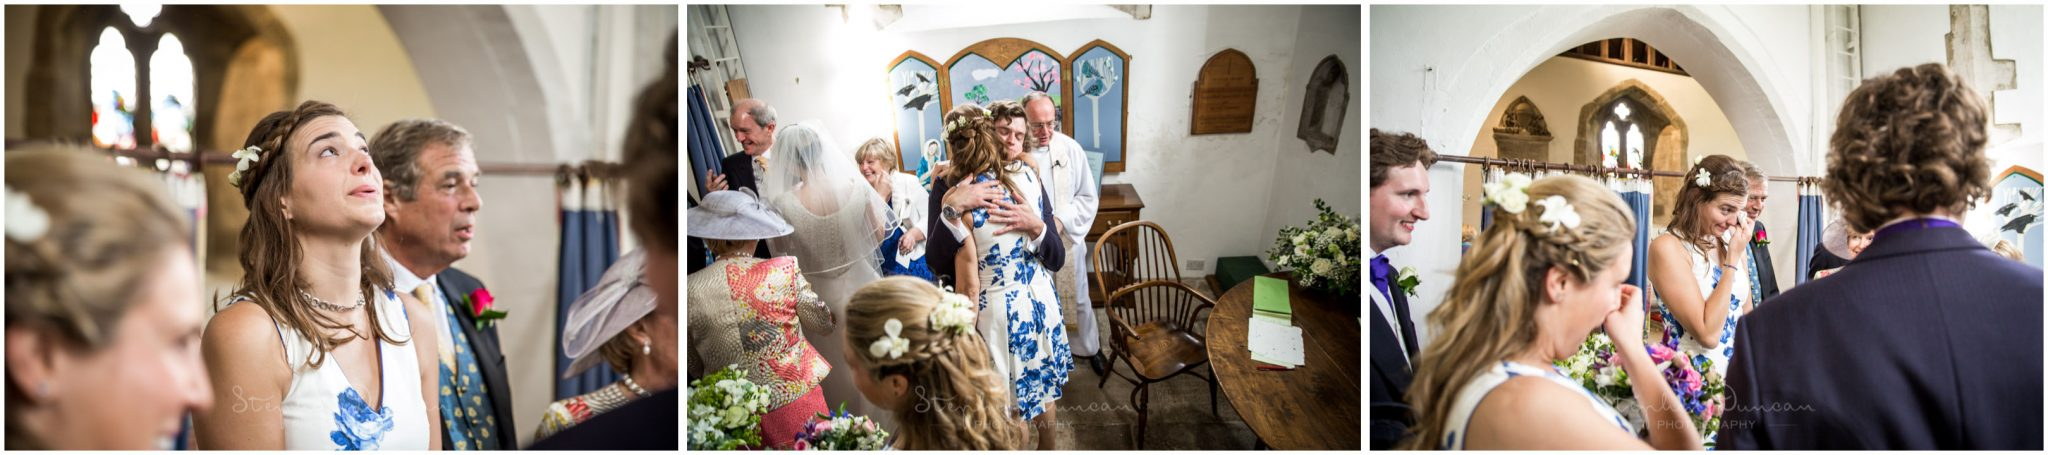 Lymington wedding photography wedding party wath signing of register